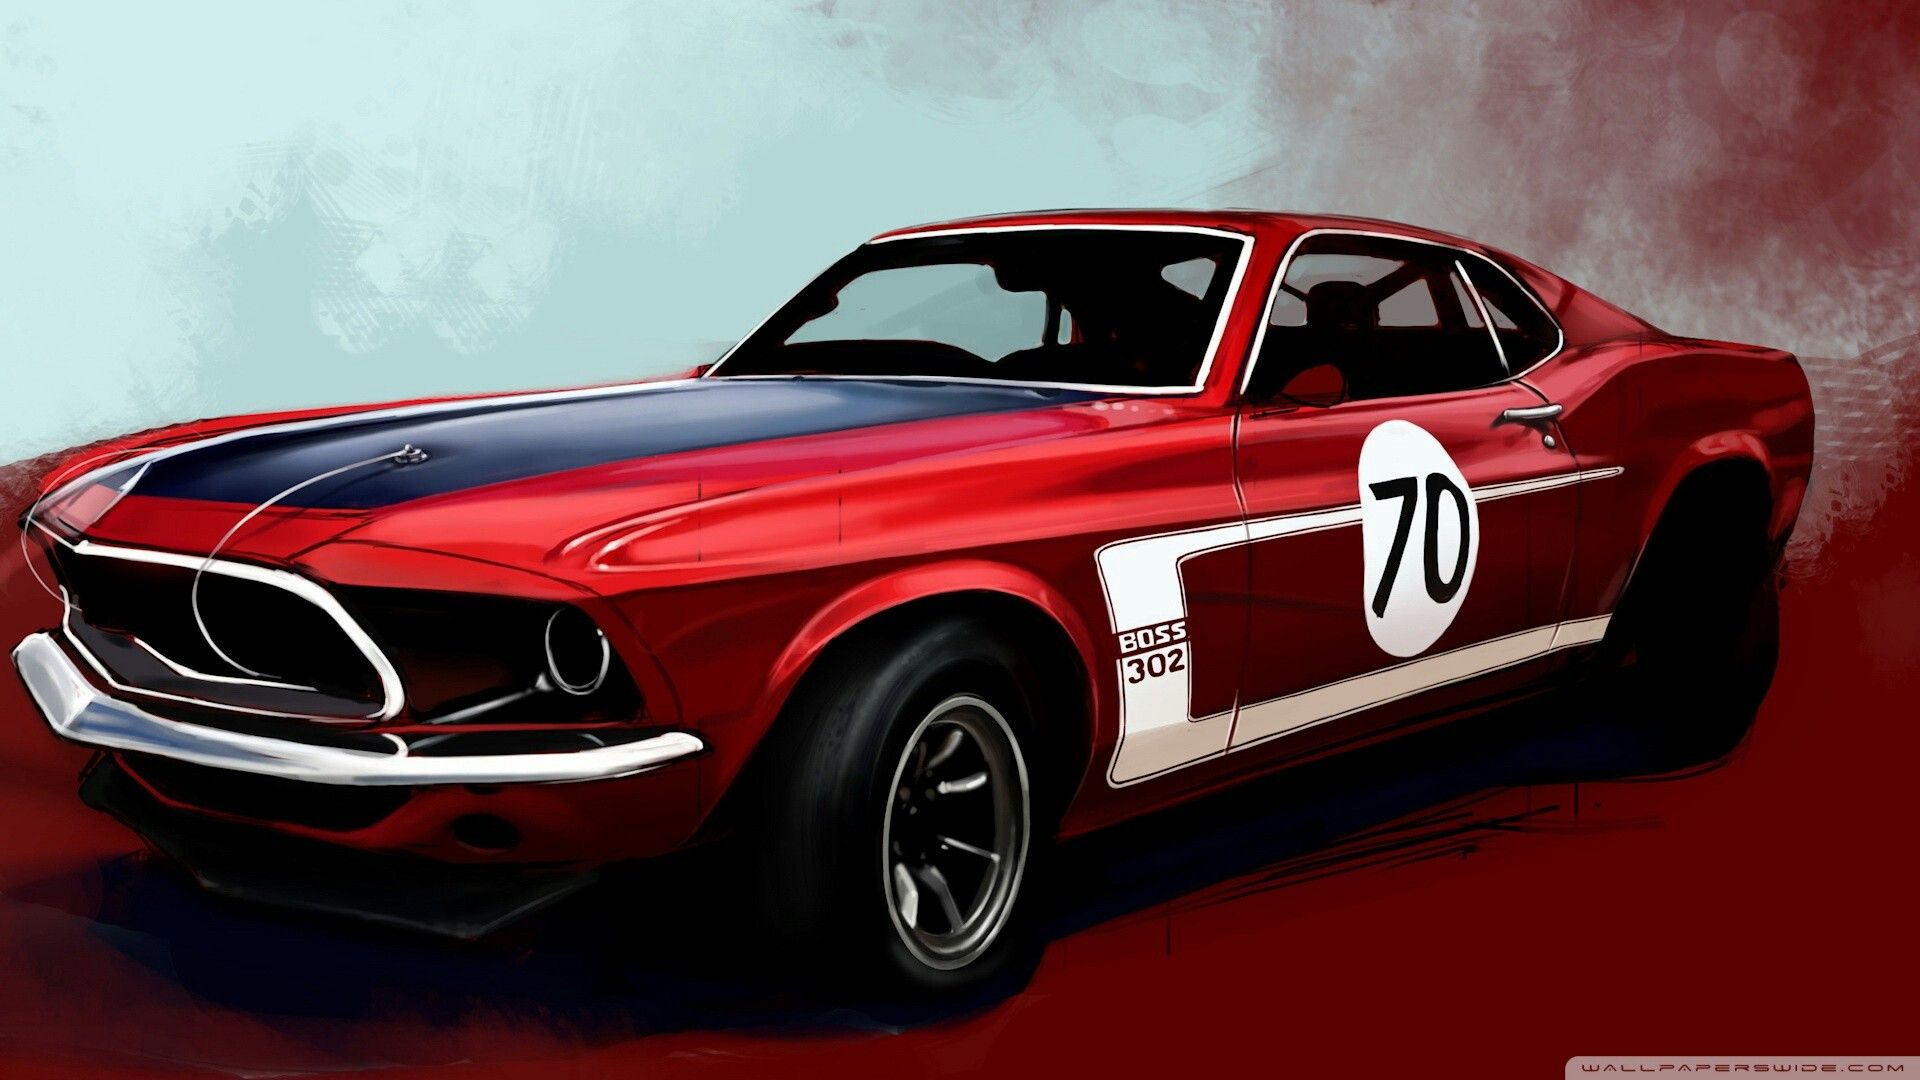 Classic Ford Mustang Boss Art X Bros Apparel Vintage Motor T Shirts Classic Muscle Cars Great Pr Ford Mustang Boss Mustang Wallpaper Classic Cars Muscle